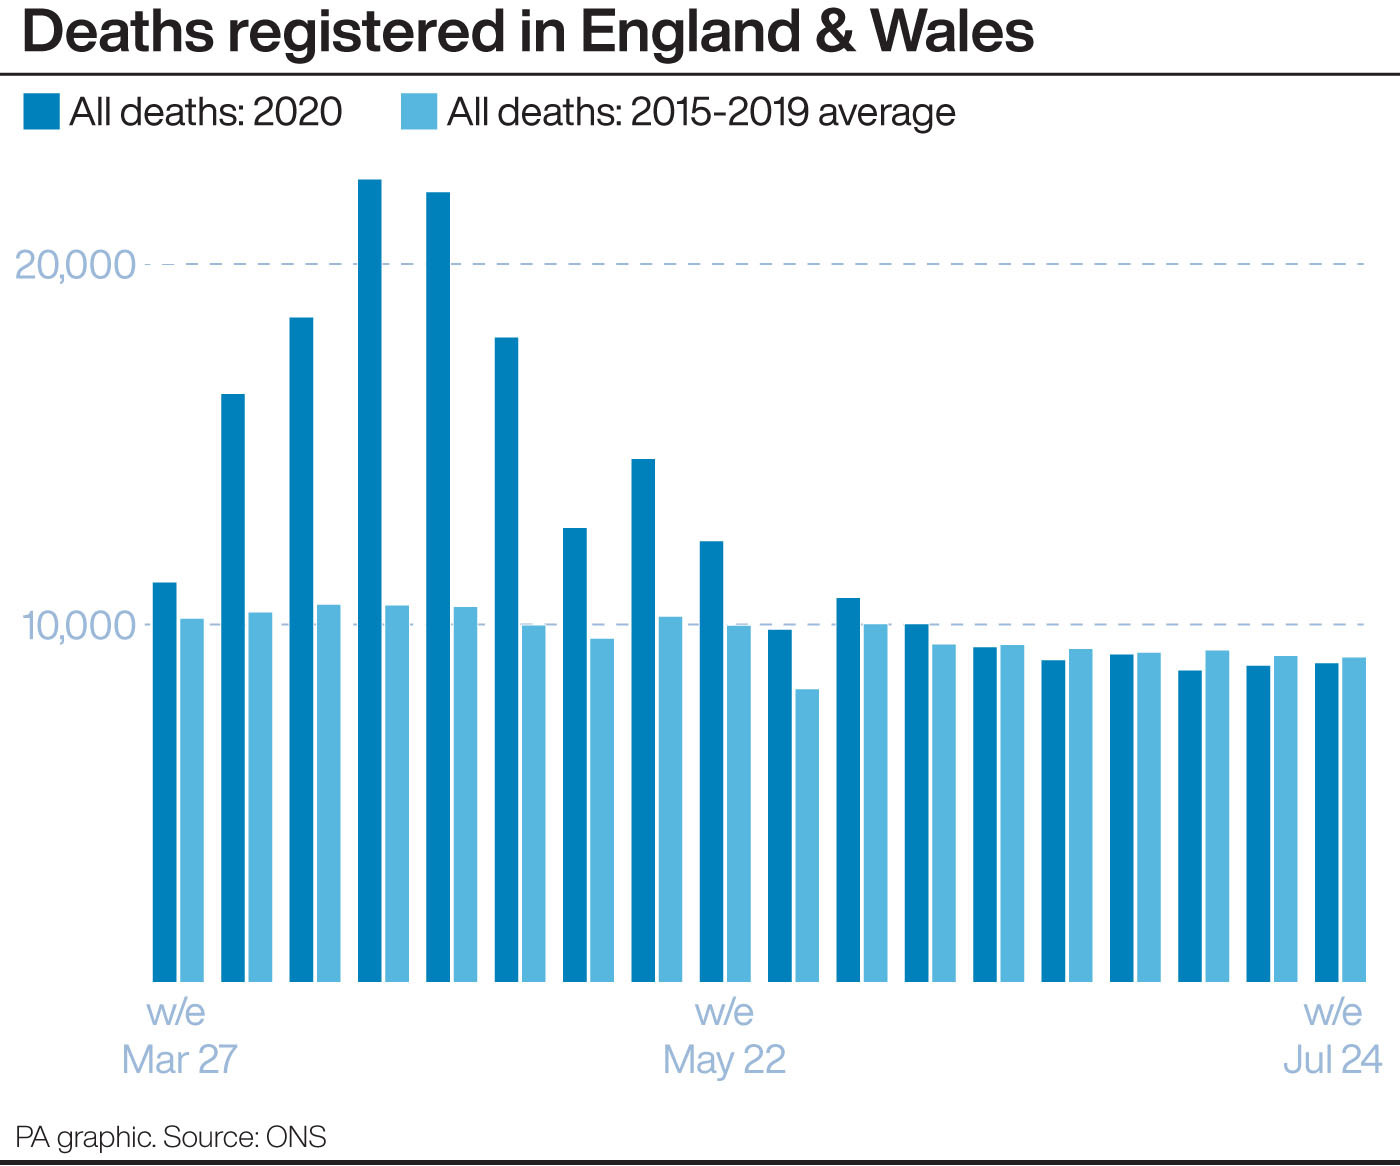 United Kingdom excess deaths during Covid-19 outbreak down by 1500